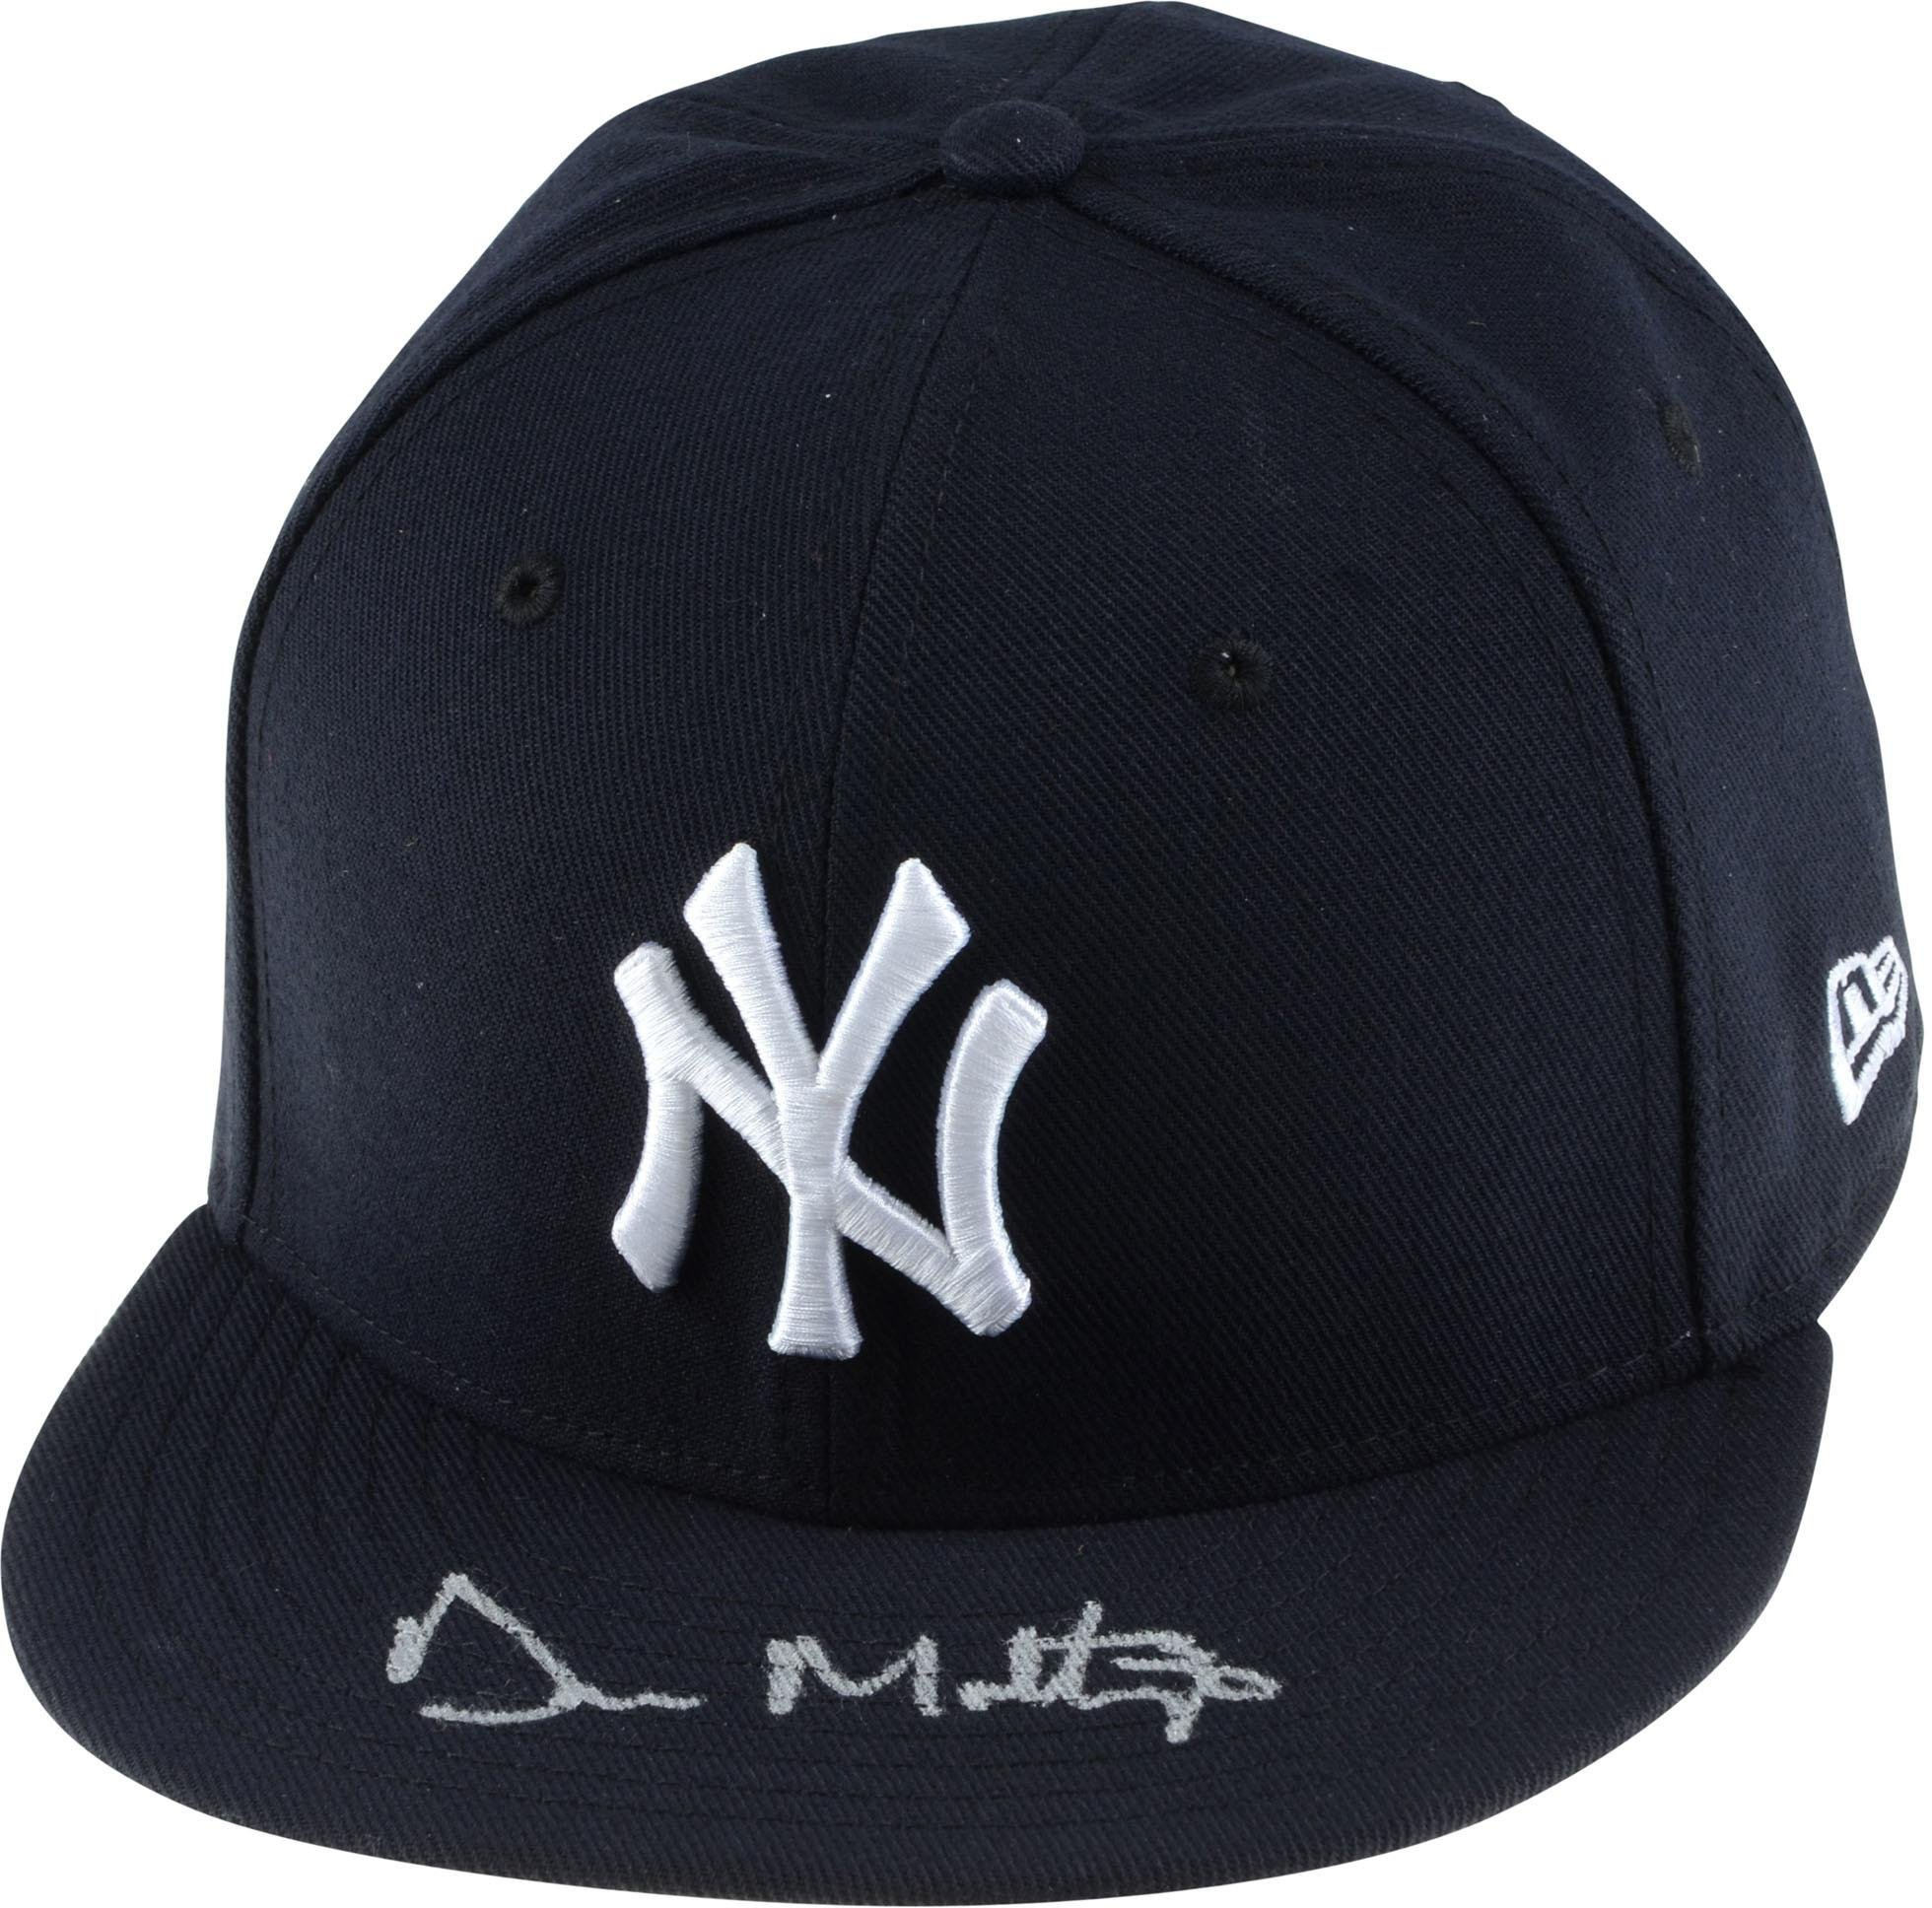 Don Mattingly New York Yankees Autographed New Era Cap Fanatics Authentic Certified Autographed Hats